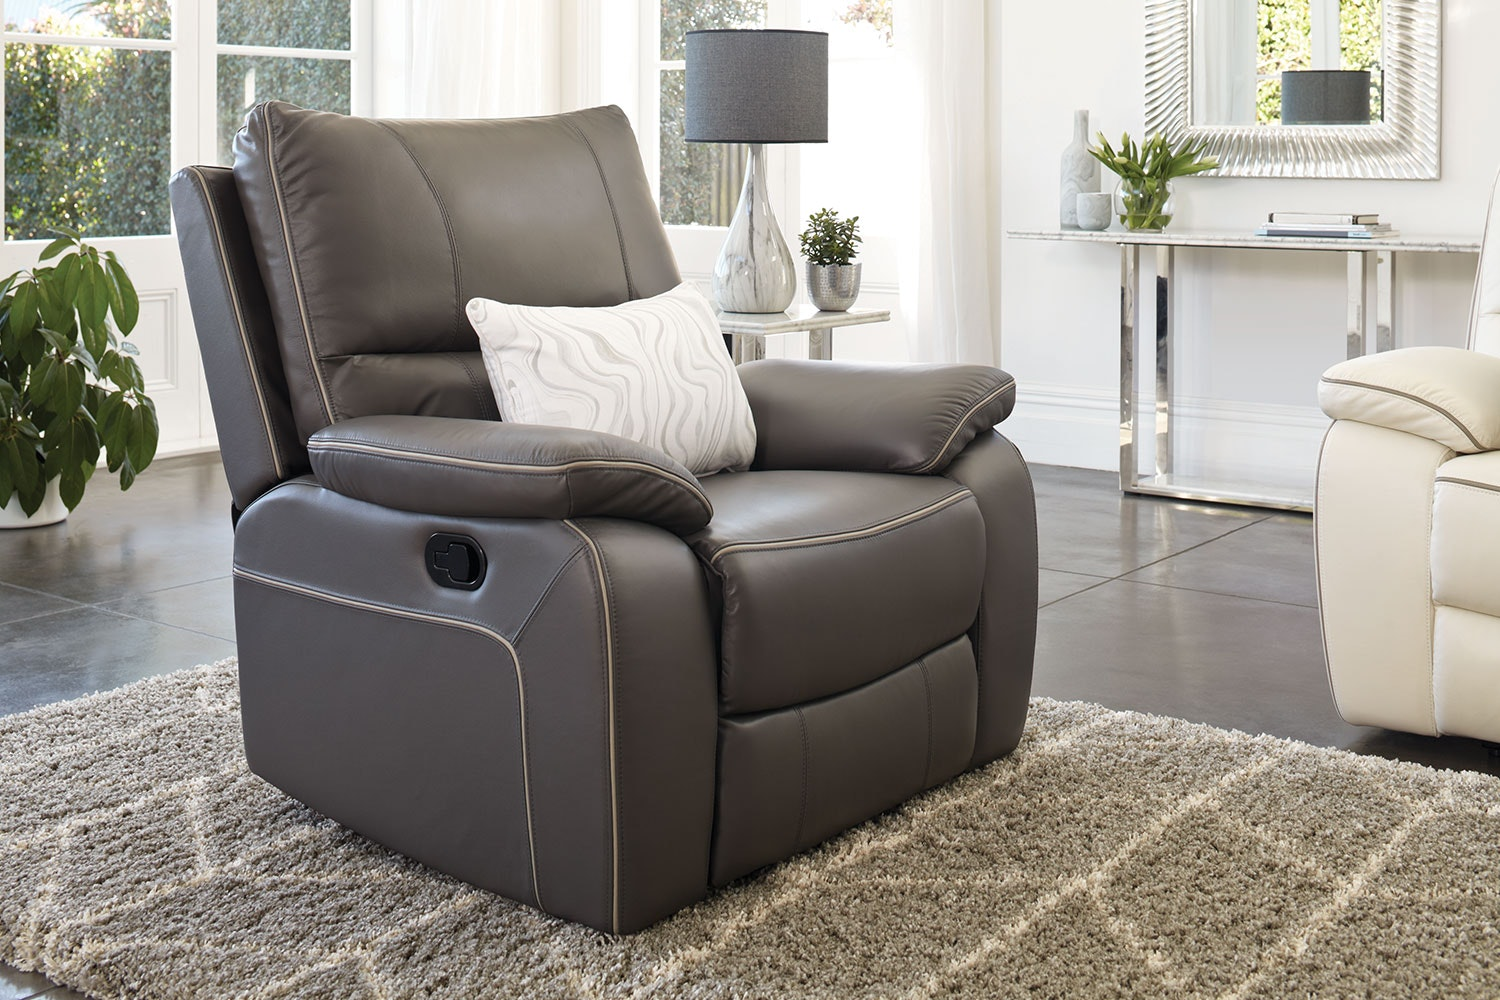 Strata Leather Recliner Chair by Synargy - Graphite